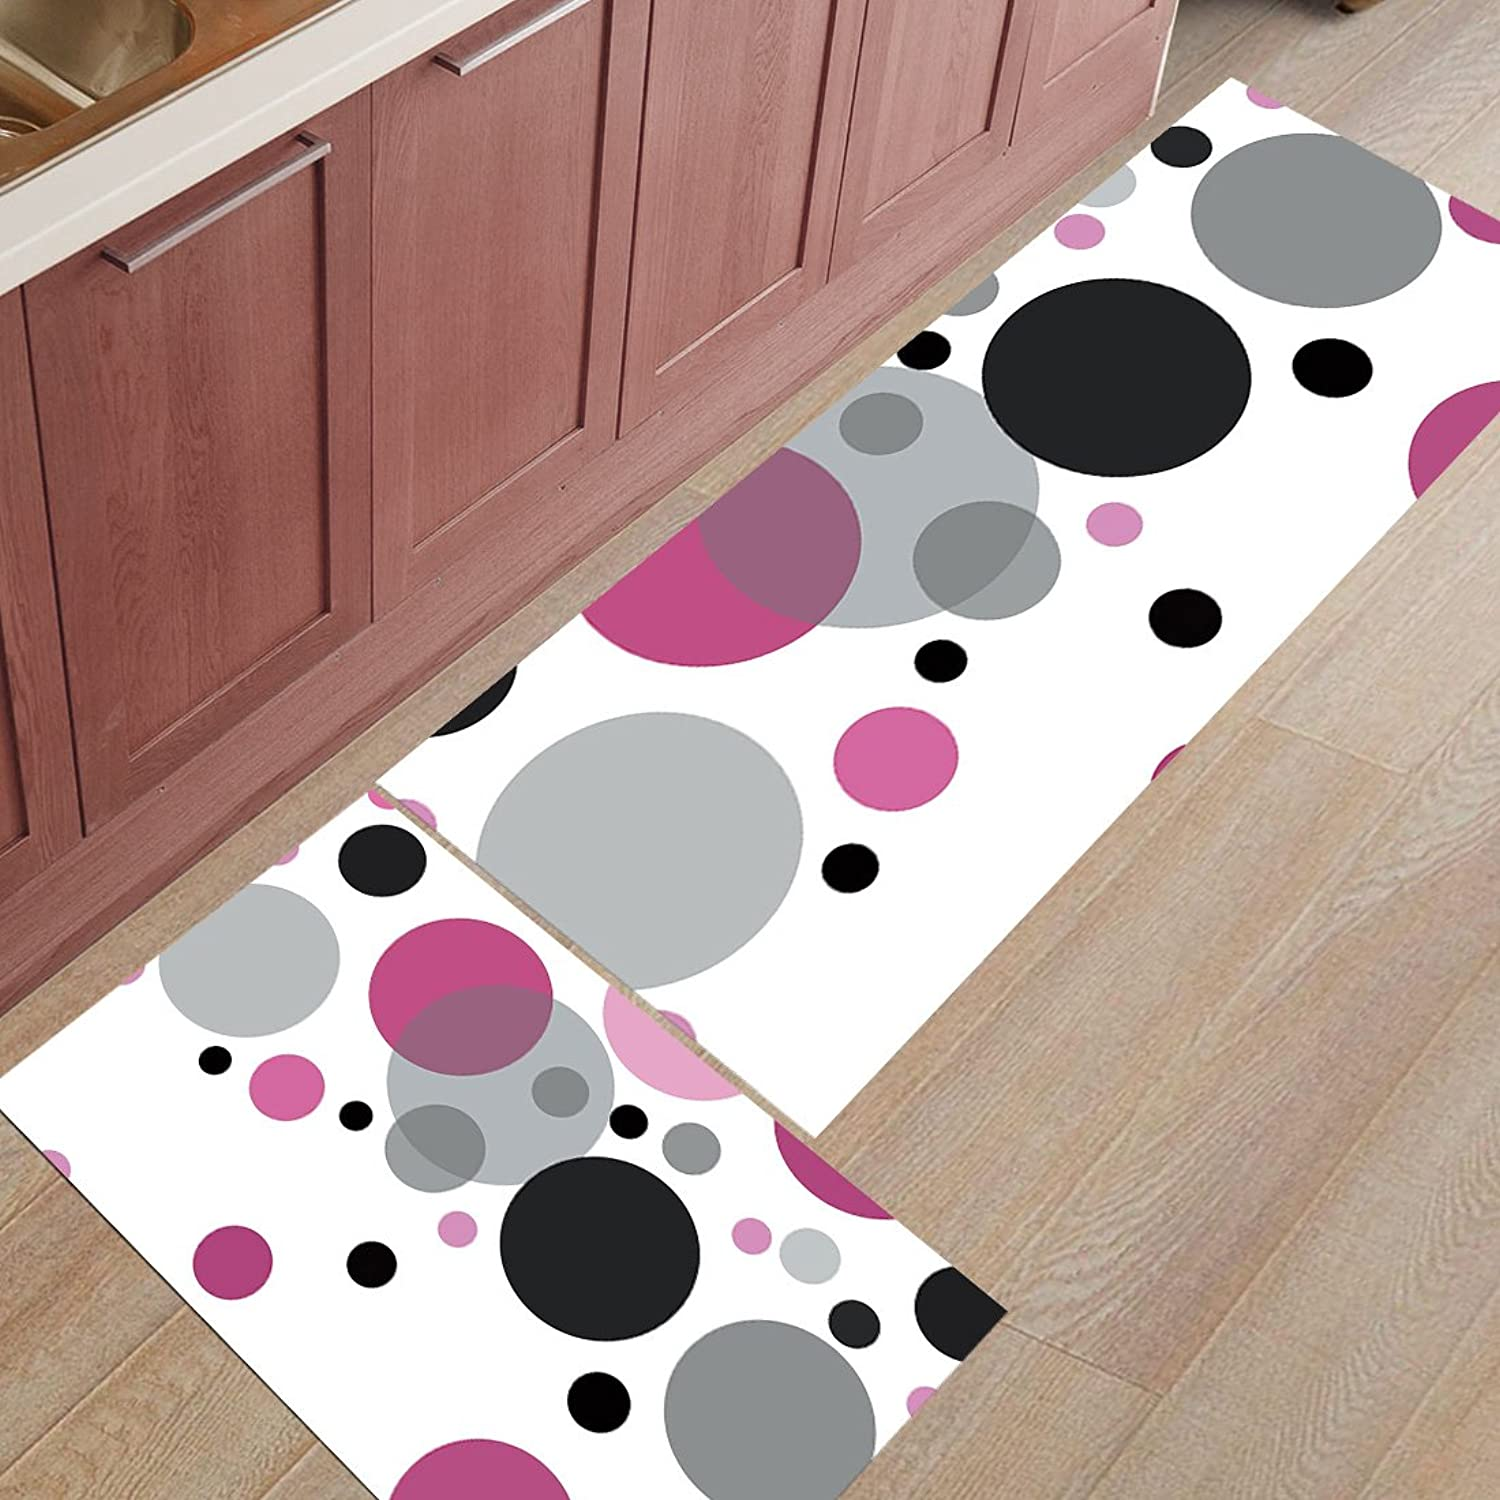 Z&L Home 2 Pieces Kitchen Rugs and Mats Non Slip Rubber Backing Floor Carpet Accent Area Runner Thin Low Pile Indoor Doormat Set-colorful Bubbles